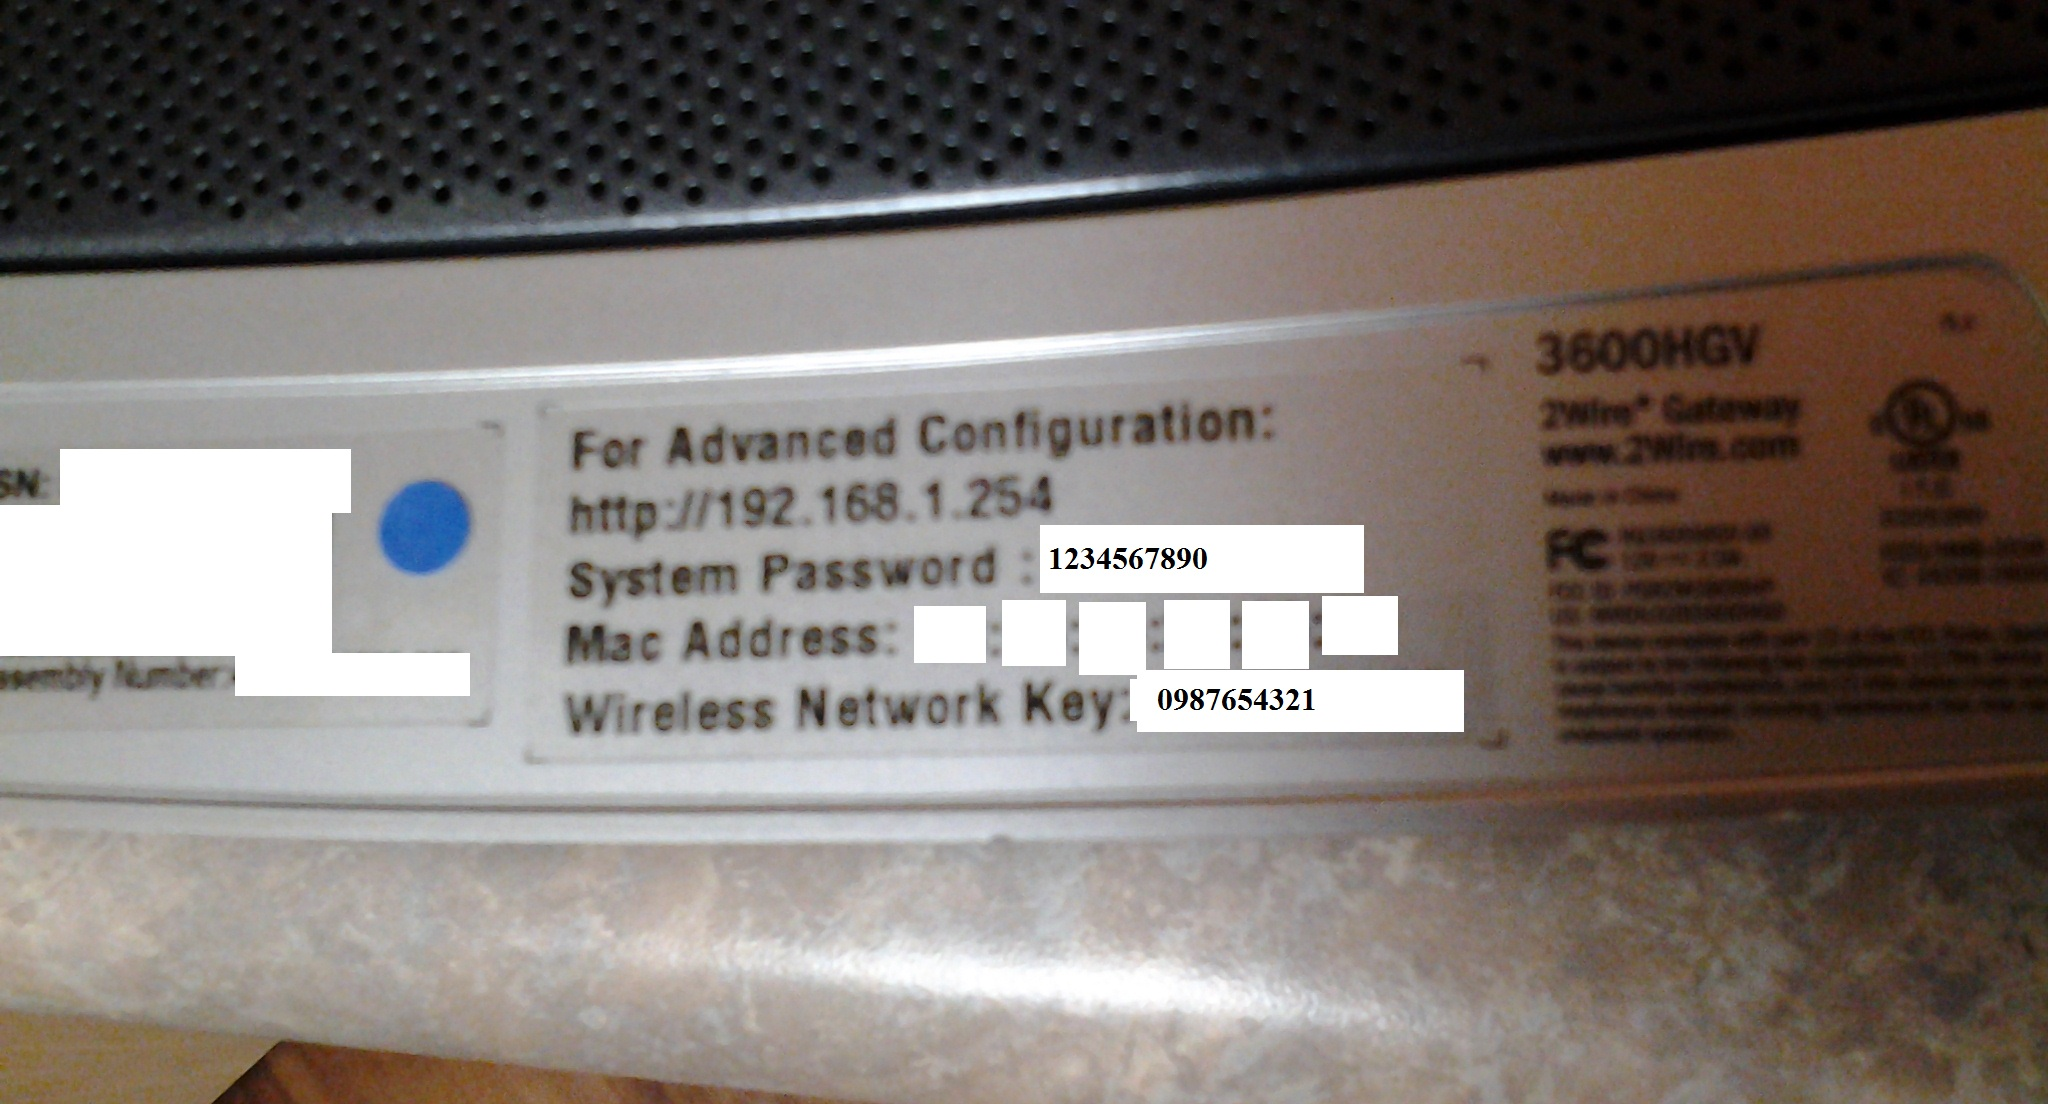 2WIRE router and strange default password choice